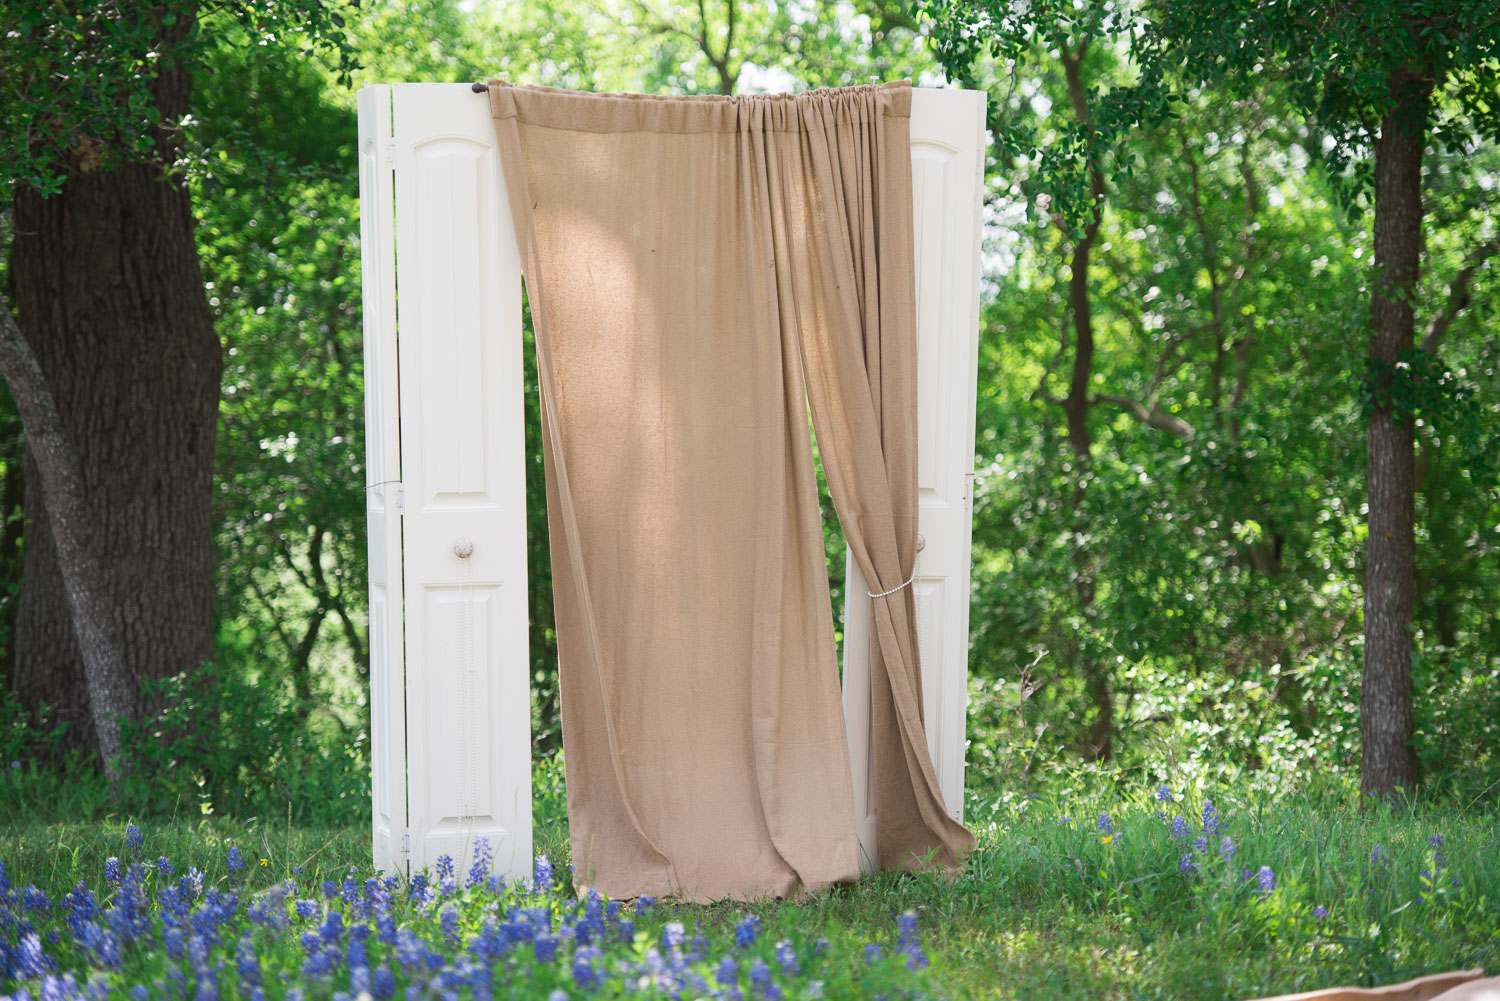 22 Doors were repurposed as a curtain for the entry way of the aisle.jpg